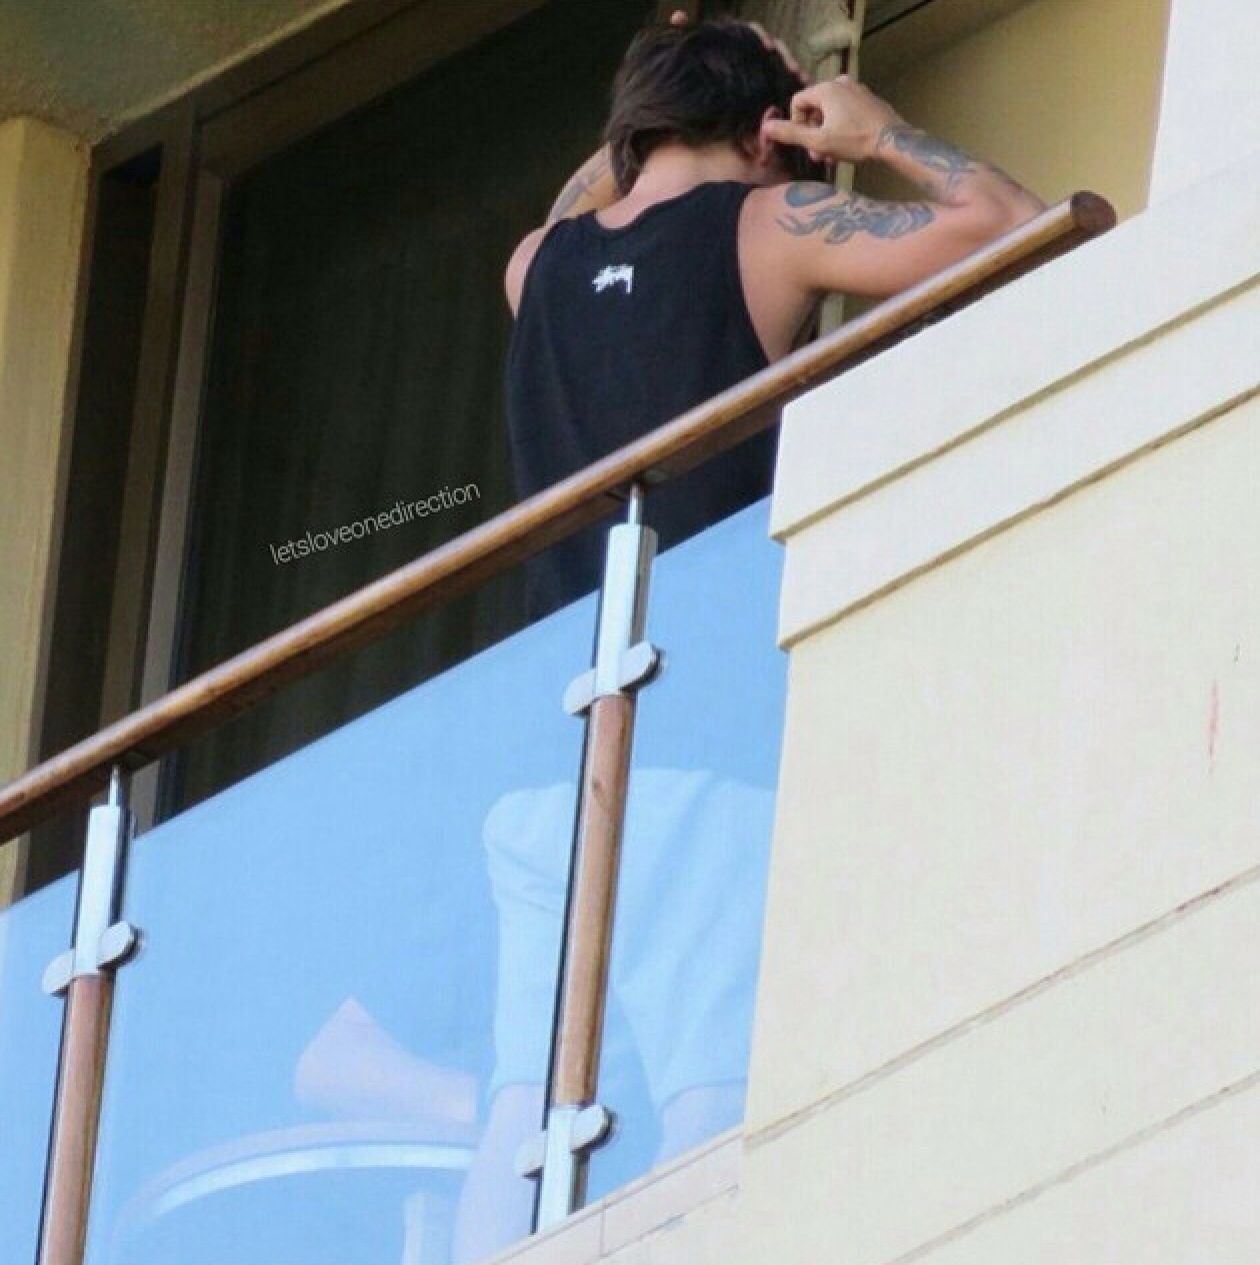 The boys on the hotel balcony in Cape Town South Africa